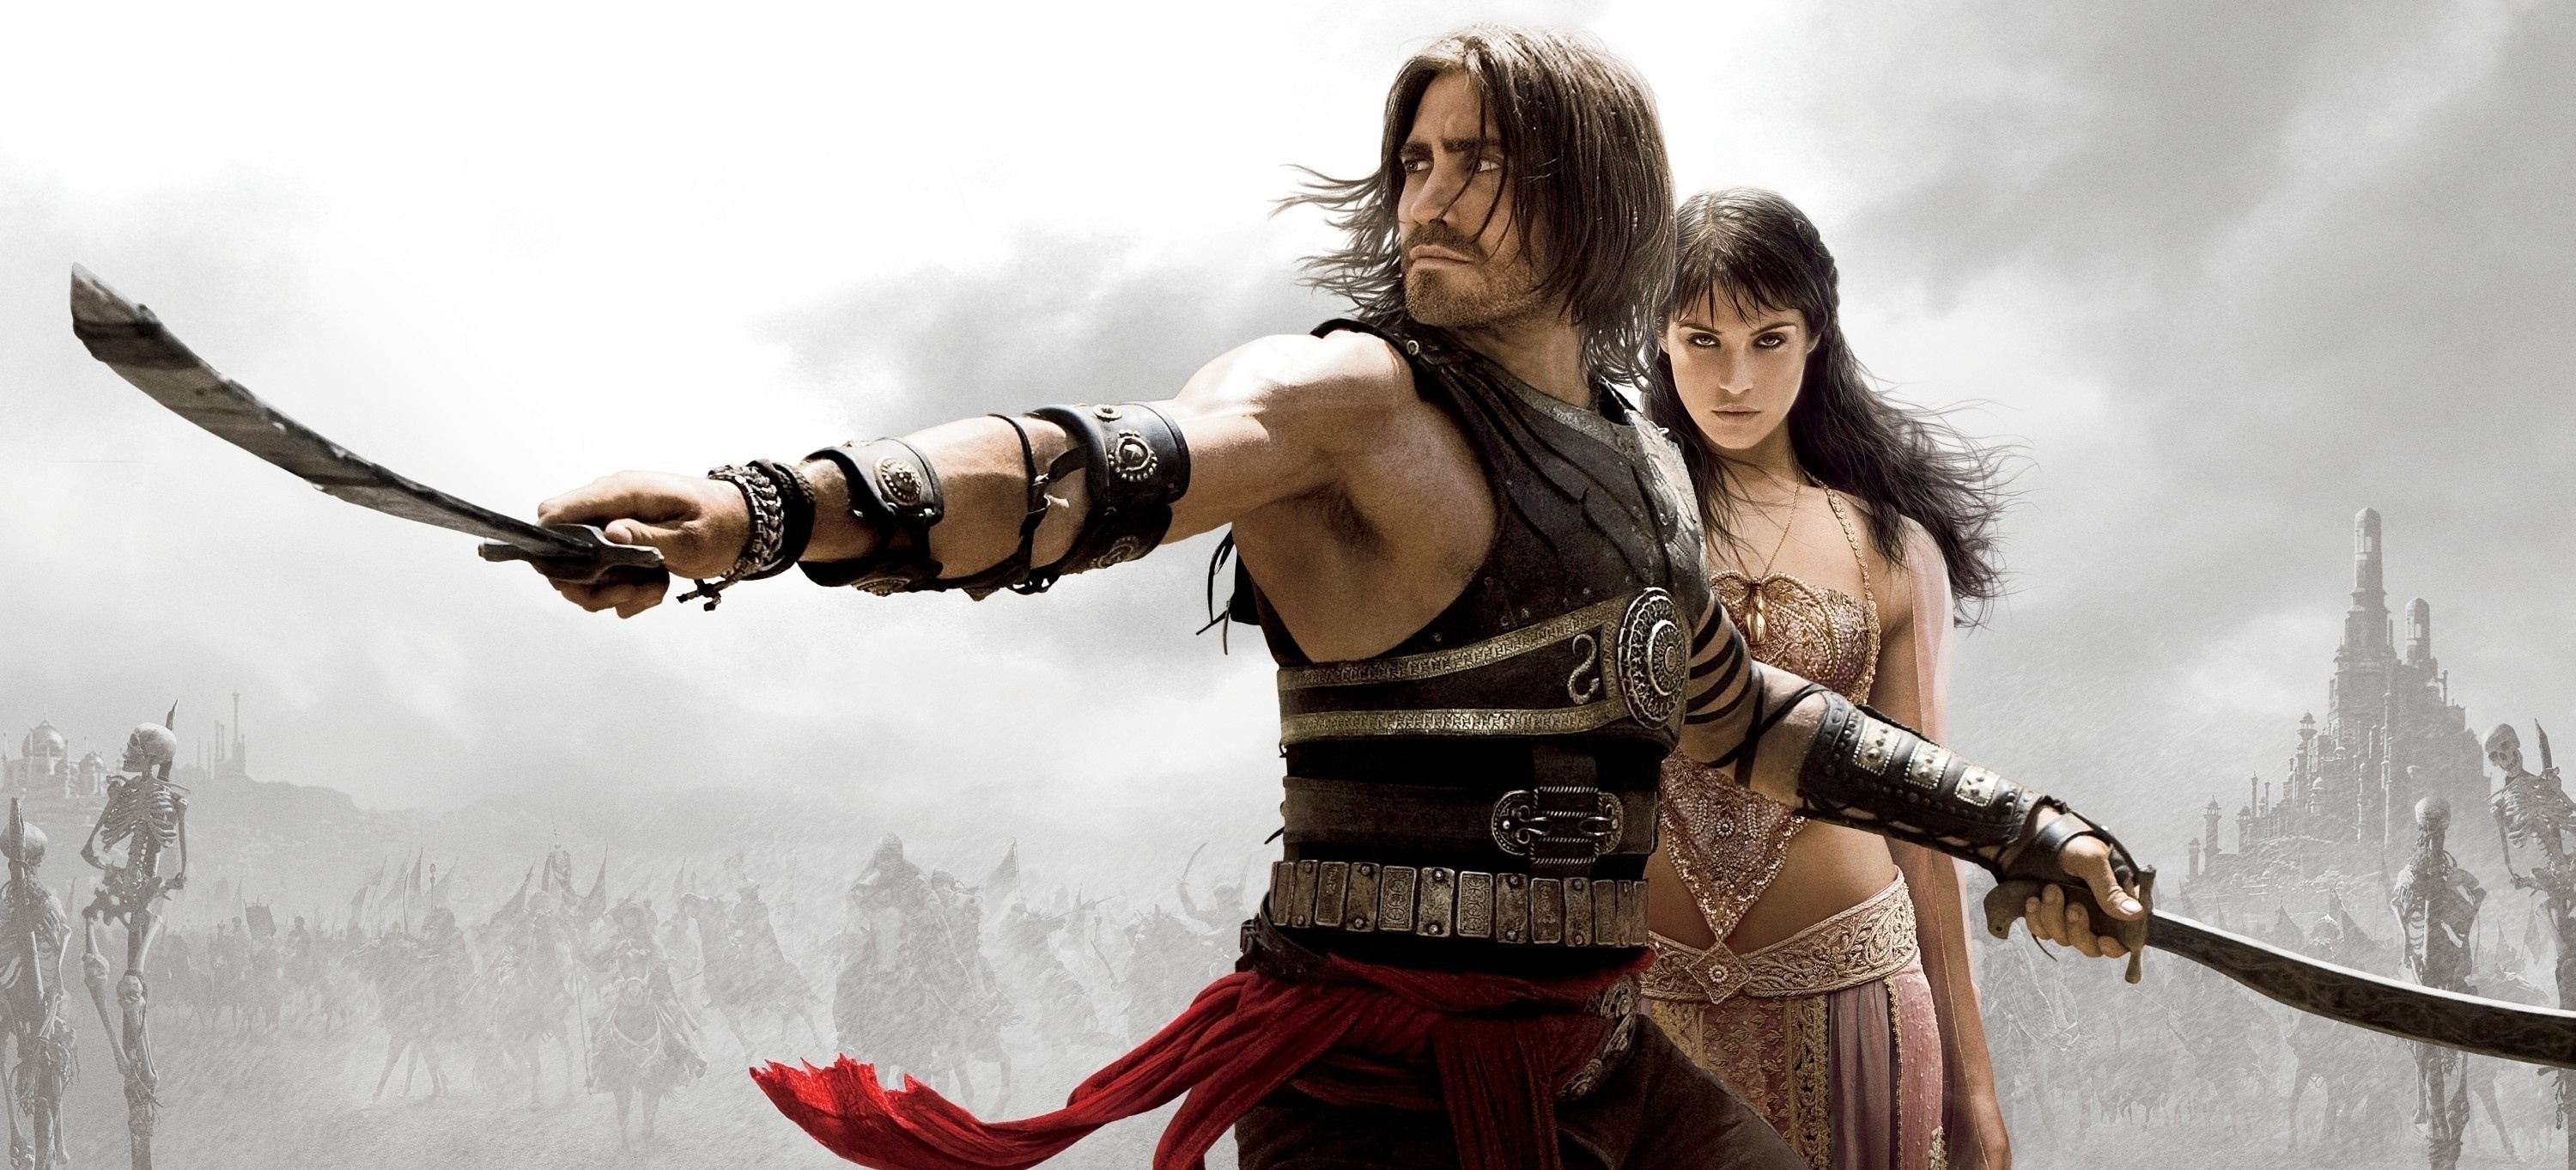 Prince Of Persia Movie HD Wallpapers